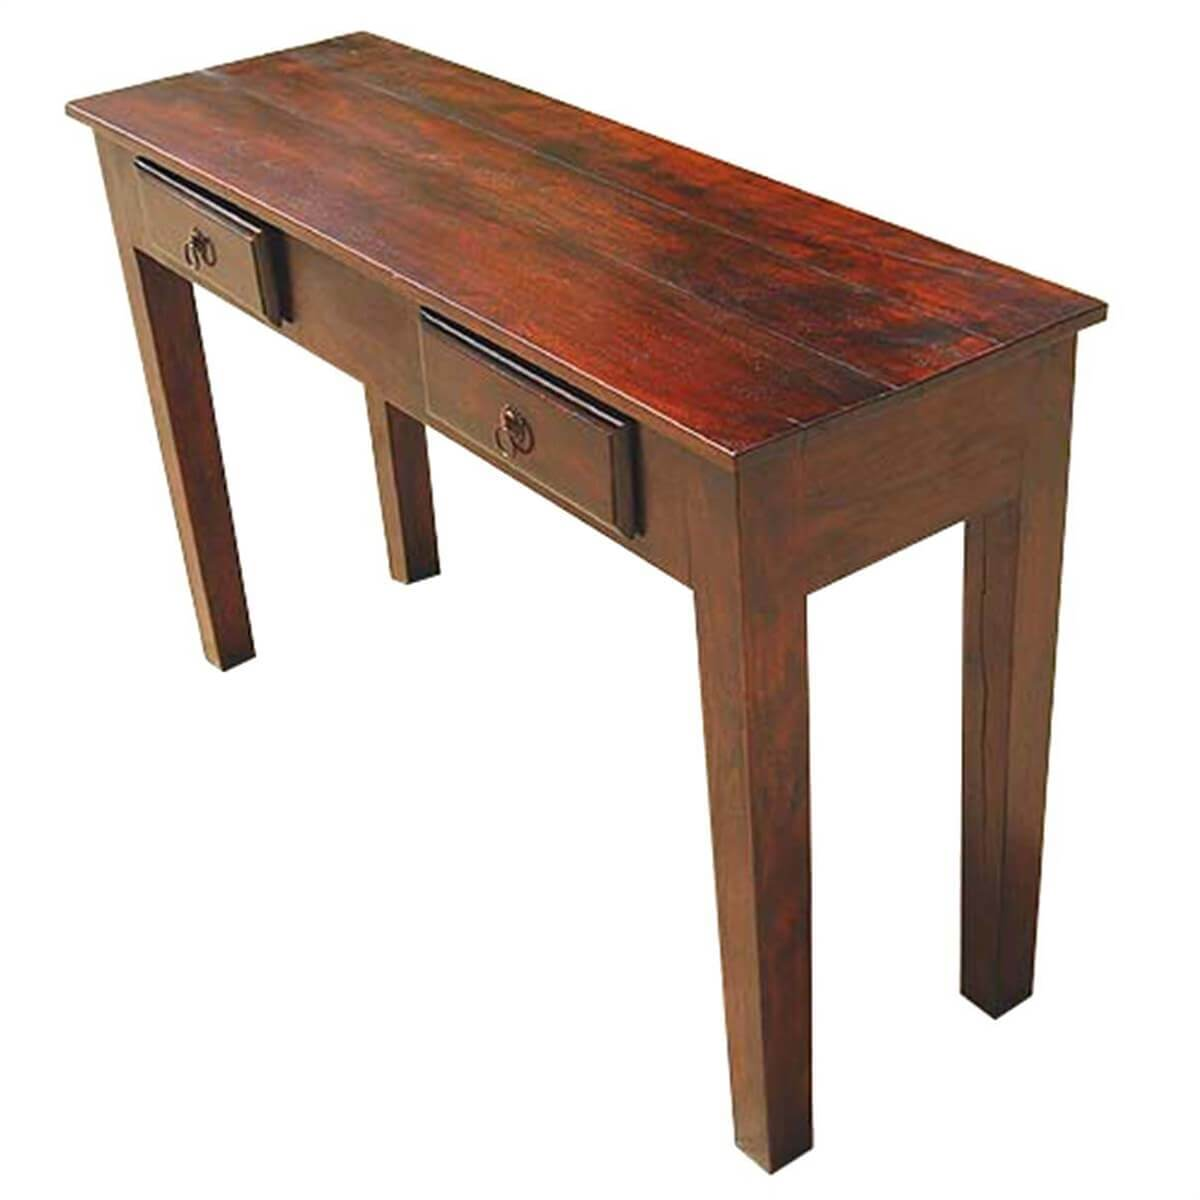 Wonderful Wood Storage Drawers Console Hall Entry Way Foyer Table